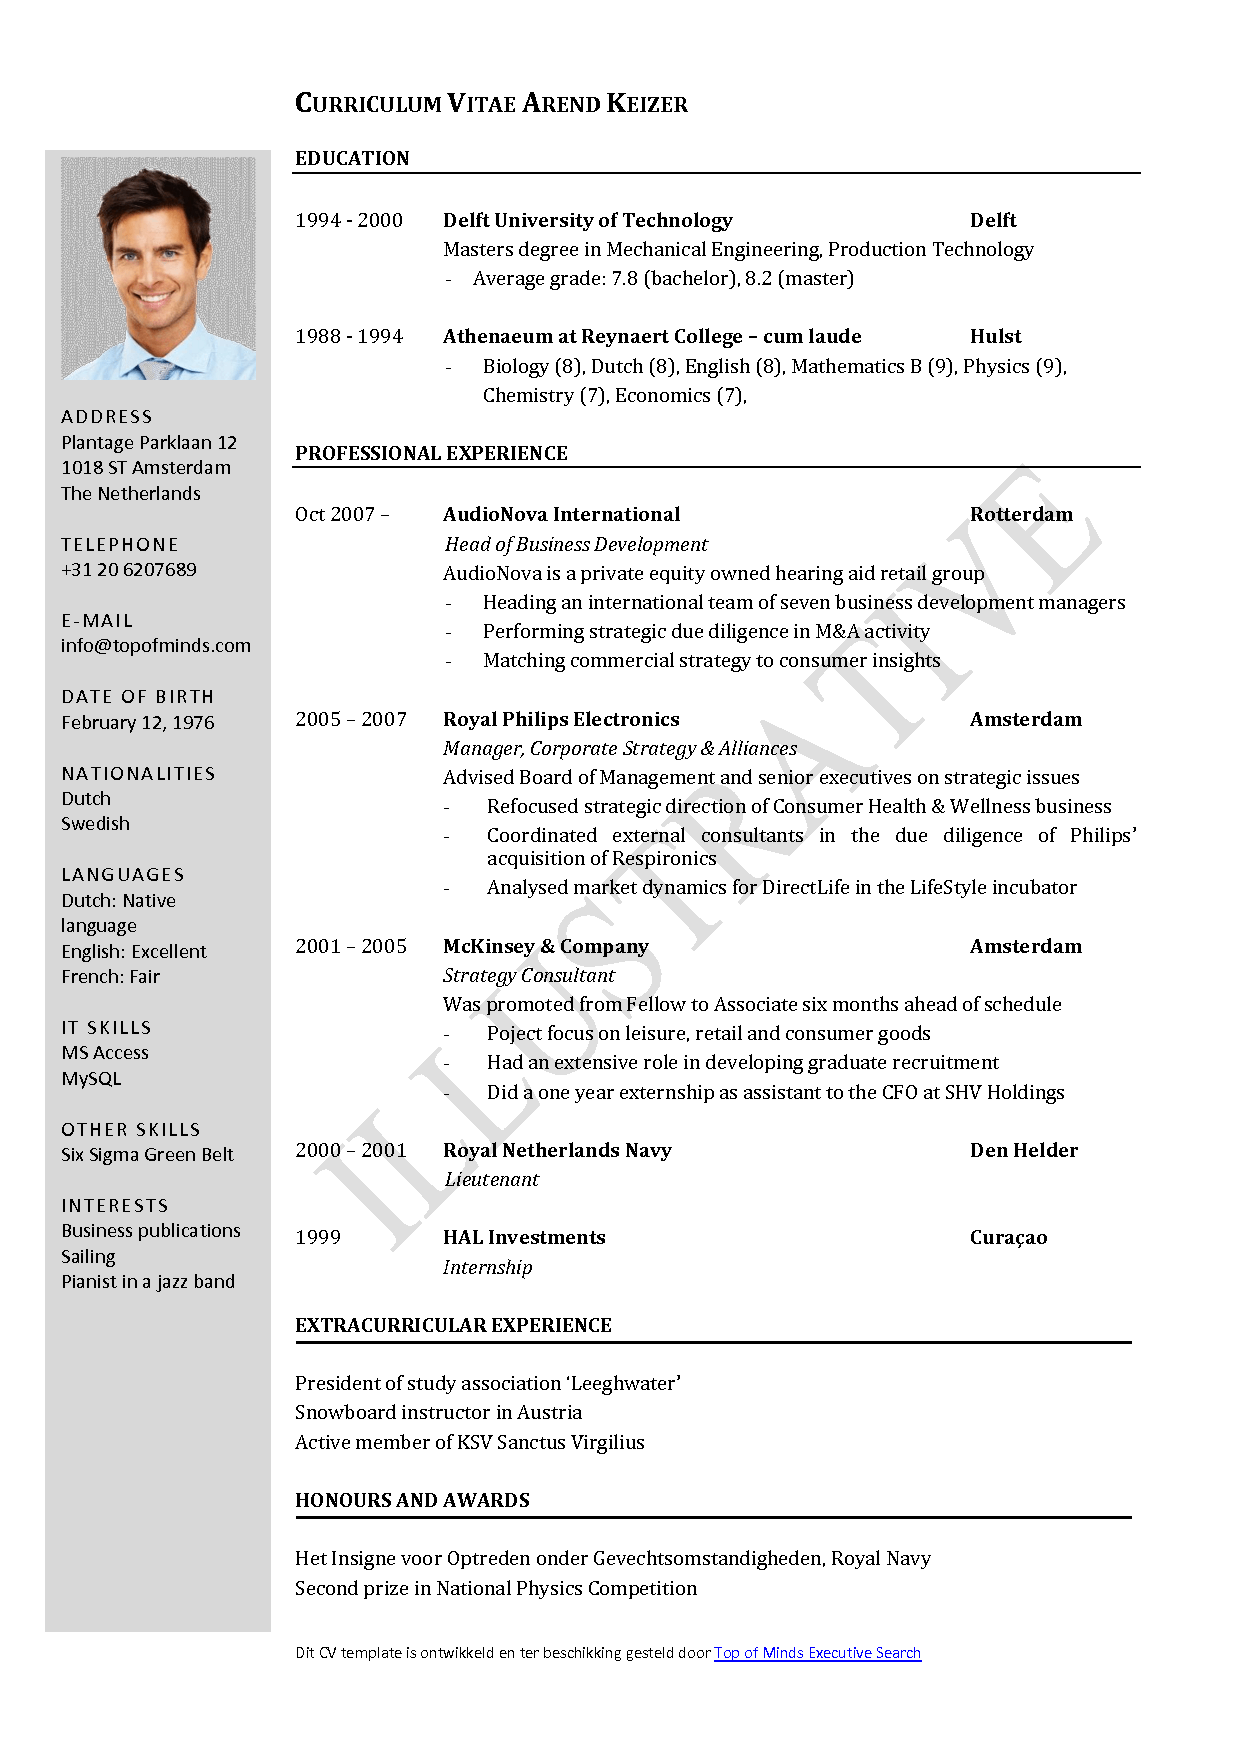 Download Free Professional Resume Templates Classy Image Result For Download Two Page Sample Resume Format  Job